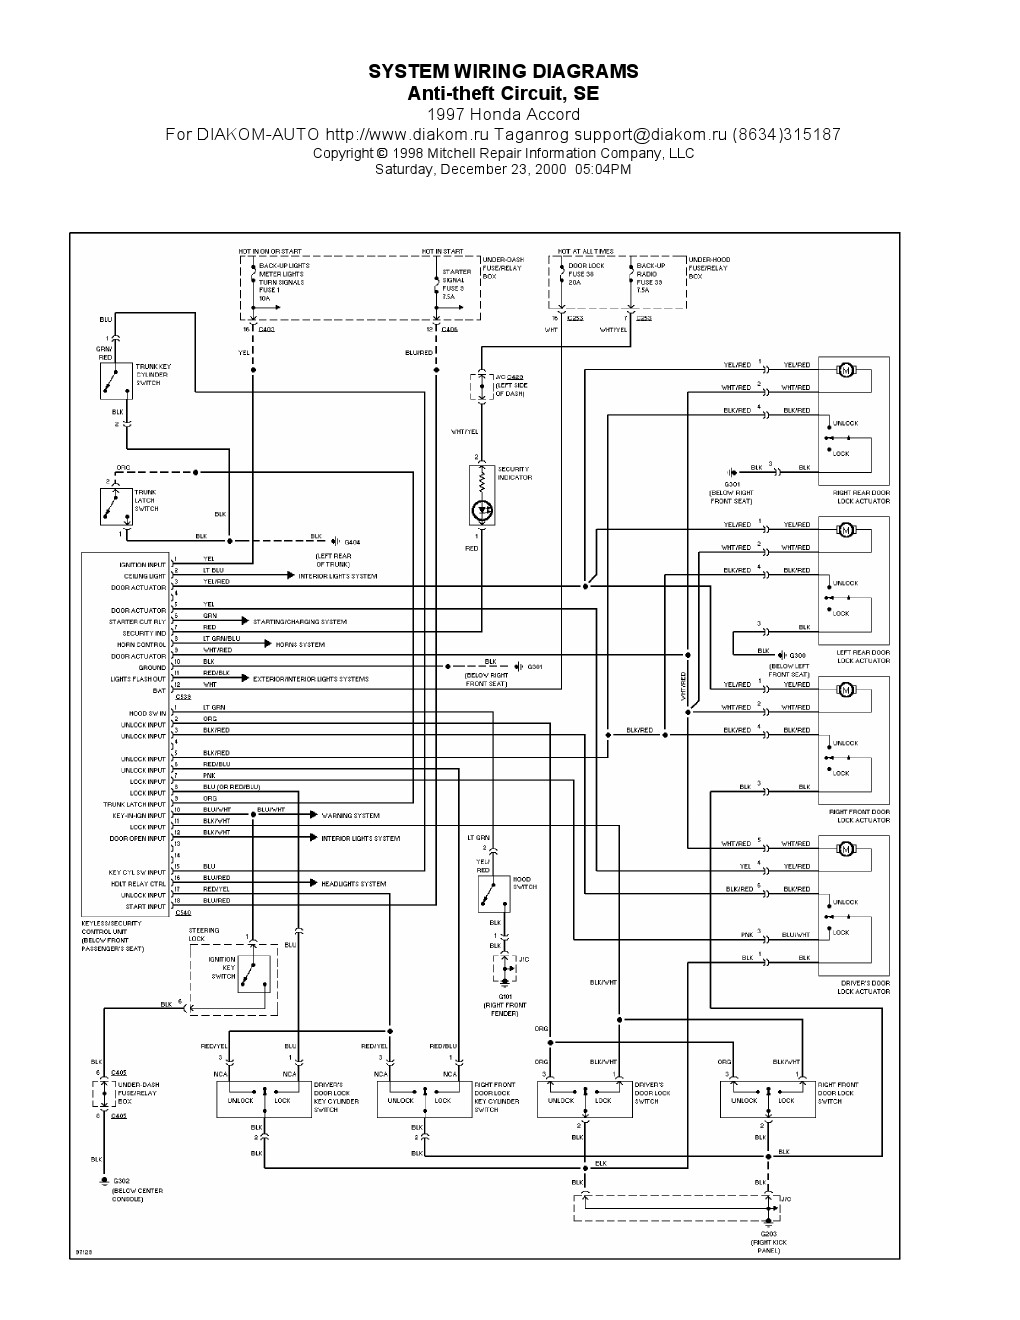 honda civic srs wiring diagram with 97 Accord Se Fuse Box on 2dwl6 Honda Accord Wiring Diagram Srs Abs Airbag additionally 1995 Honda Wiring Diagram also 97 Accord Se Fuse Box together with Honda Crv Fuel Pump Location furthermore Wiring Diagram 93 Del Sol Distributor.